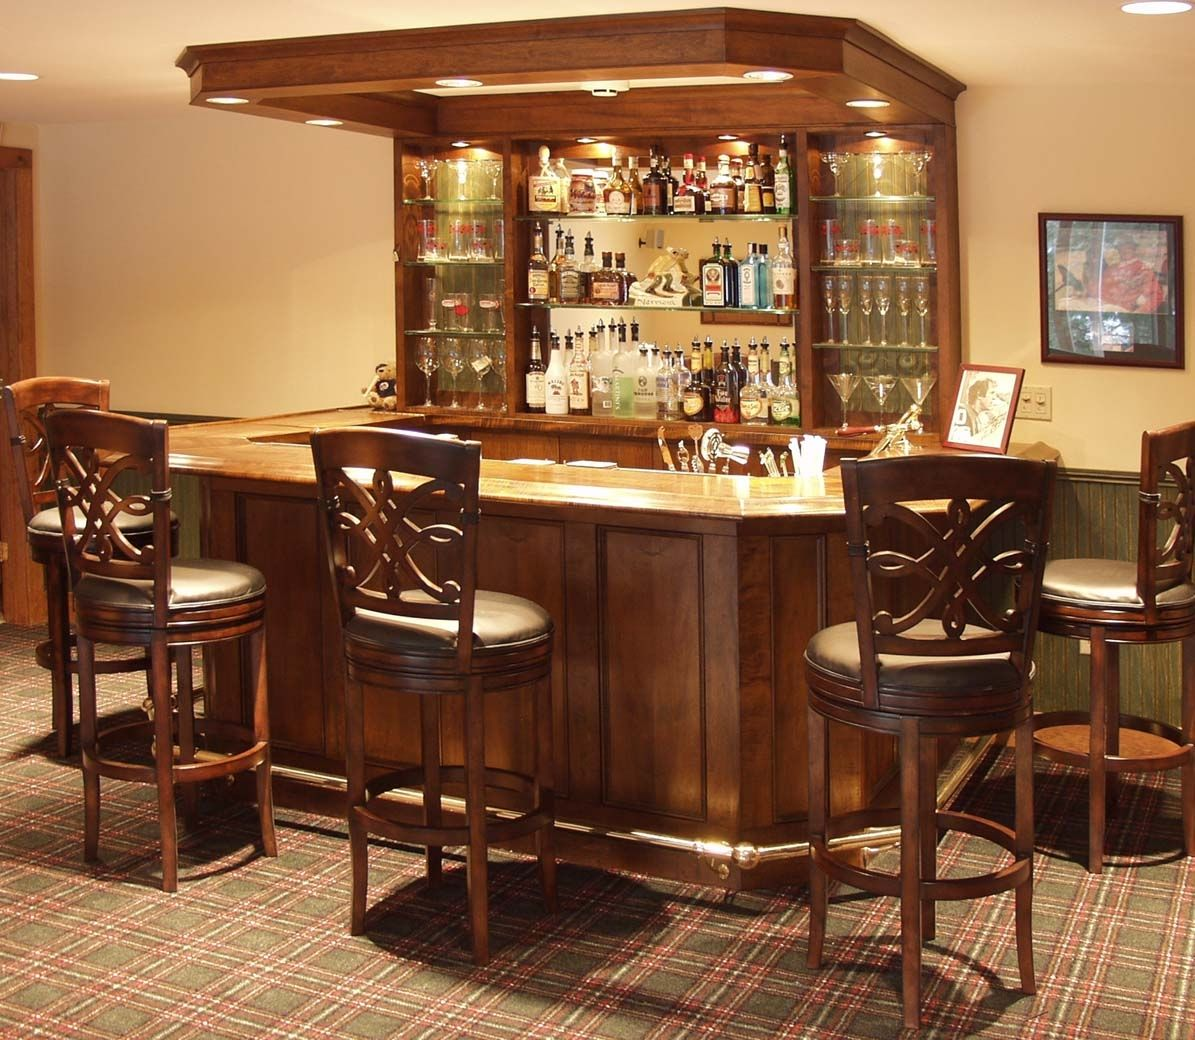 Traditional Home Bar Ideas with Wooden Furnishing with Glass Touches